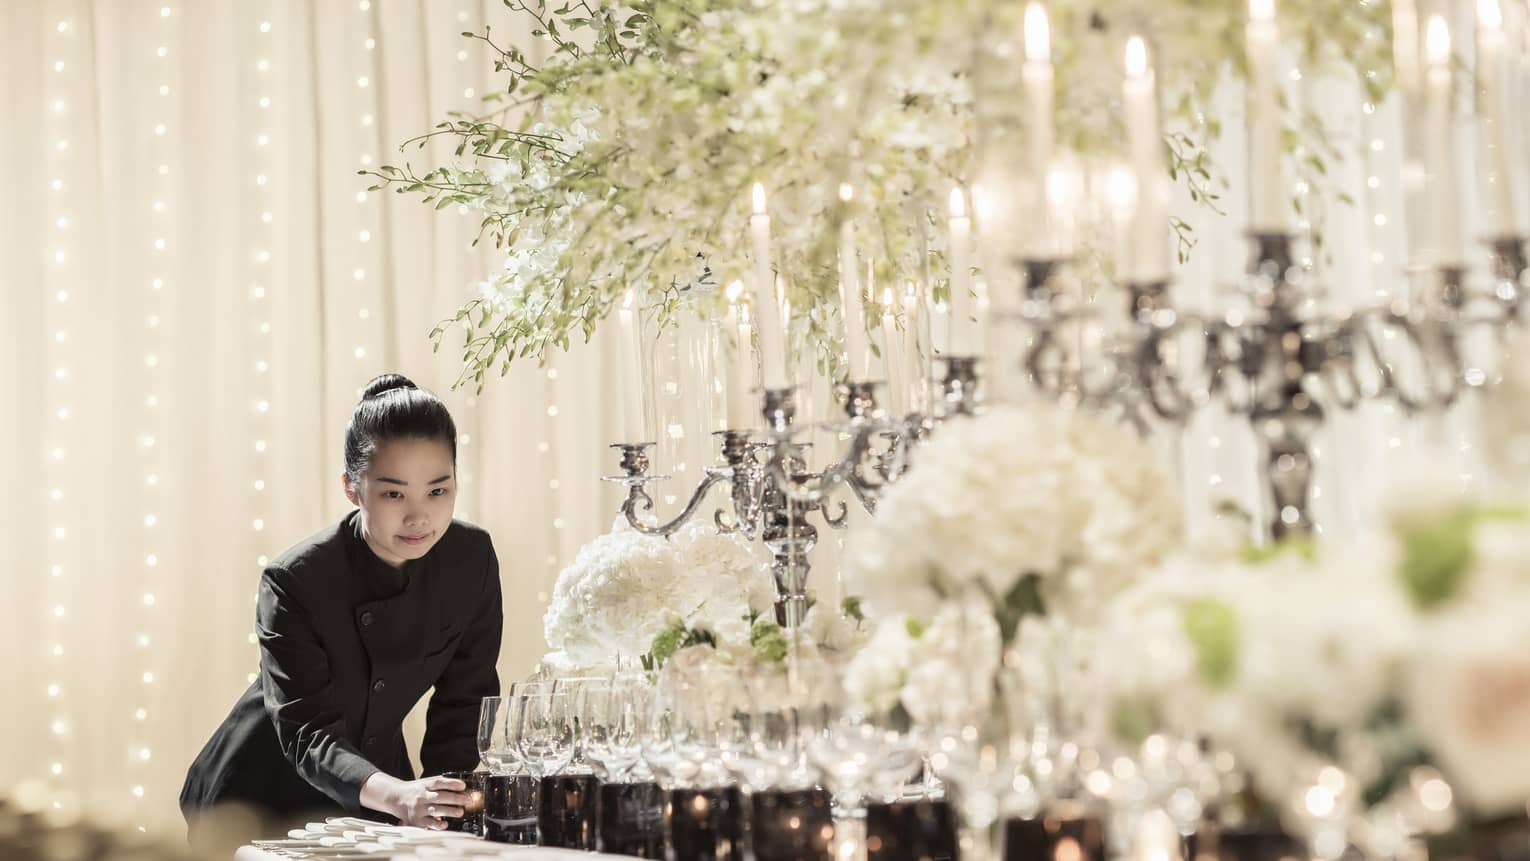 Hotel staff places candle at end of long formal dining table set with candlebras, sparkling lights